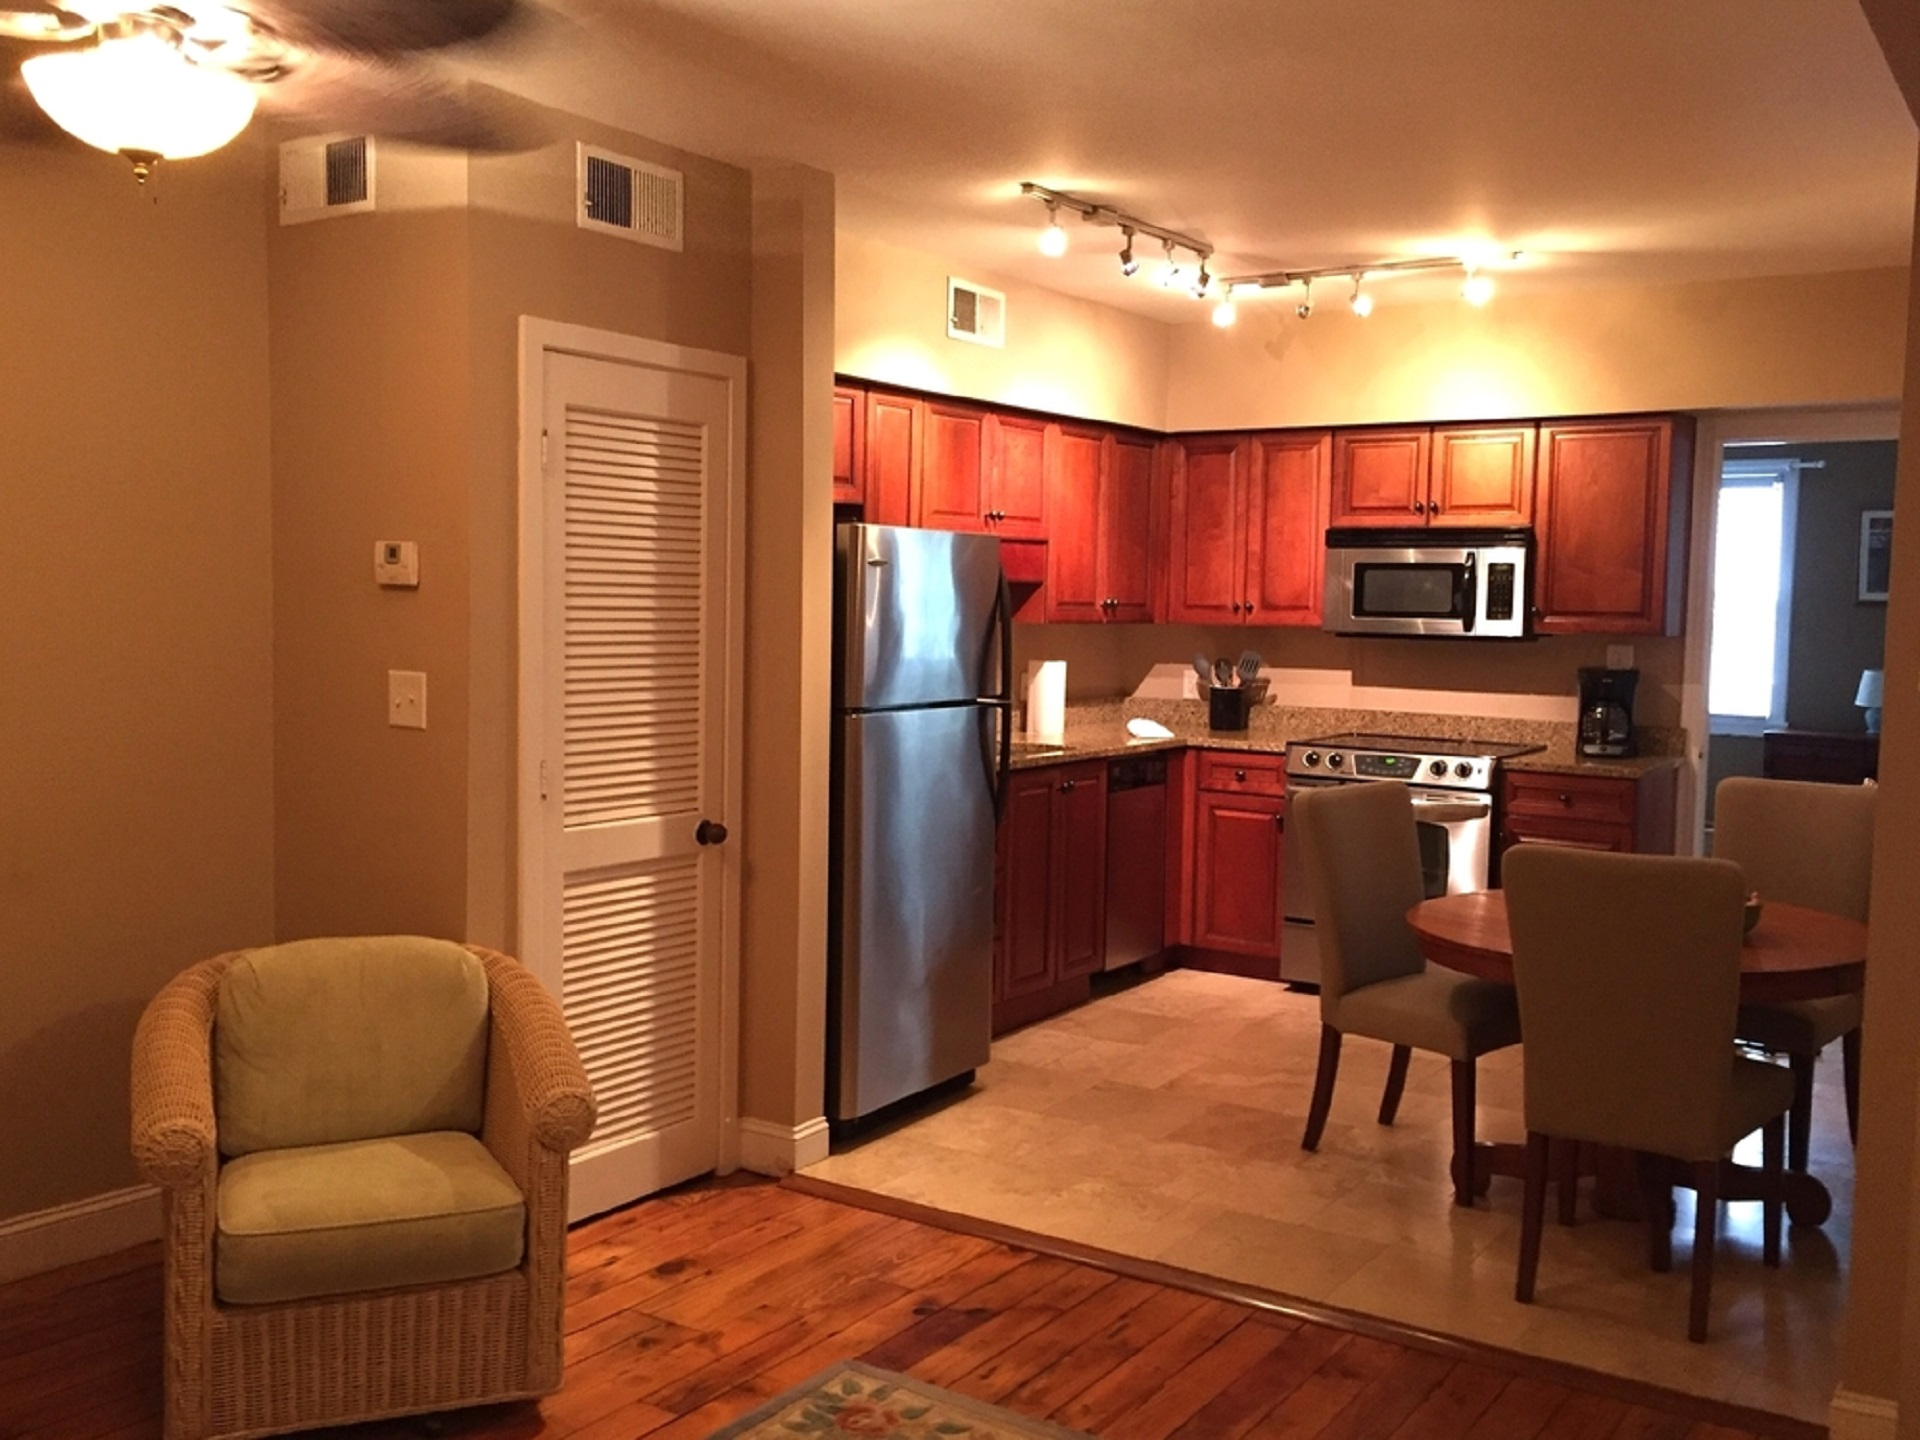 251 #4 - 1 BEDROOM - SLEEPS 4AVAILABLE ON A MONTHLY BASIS: NOw